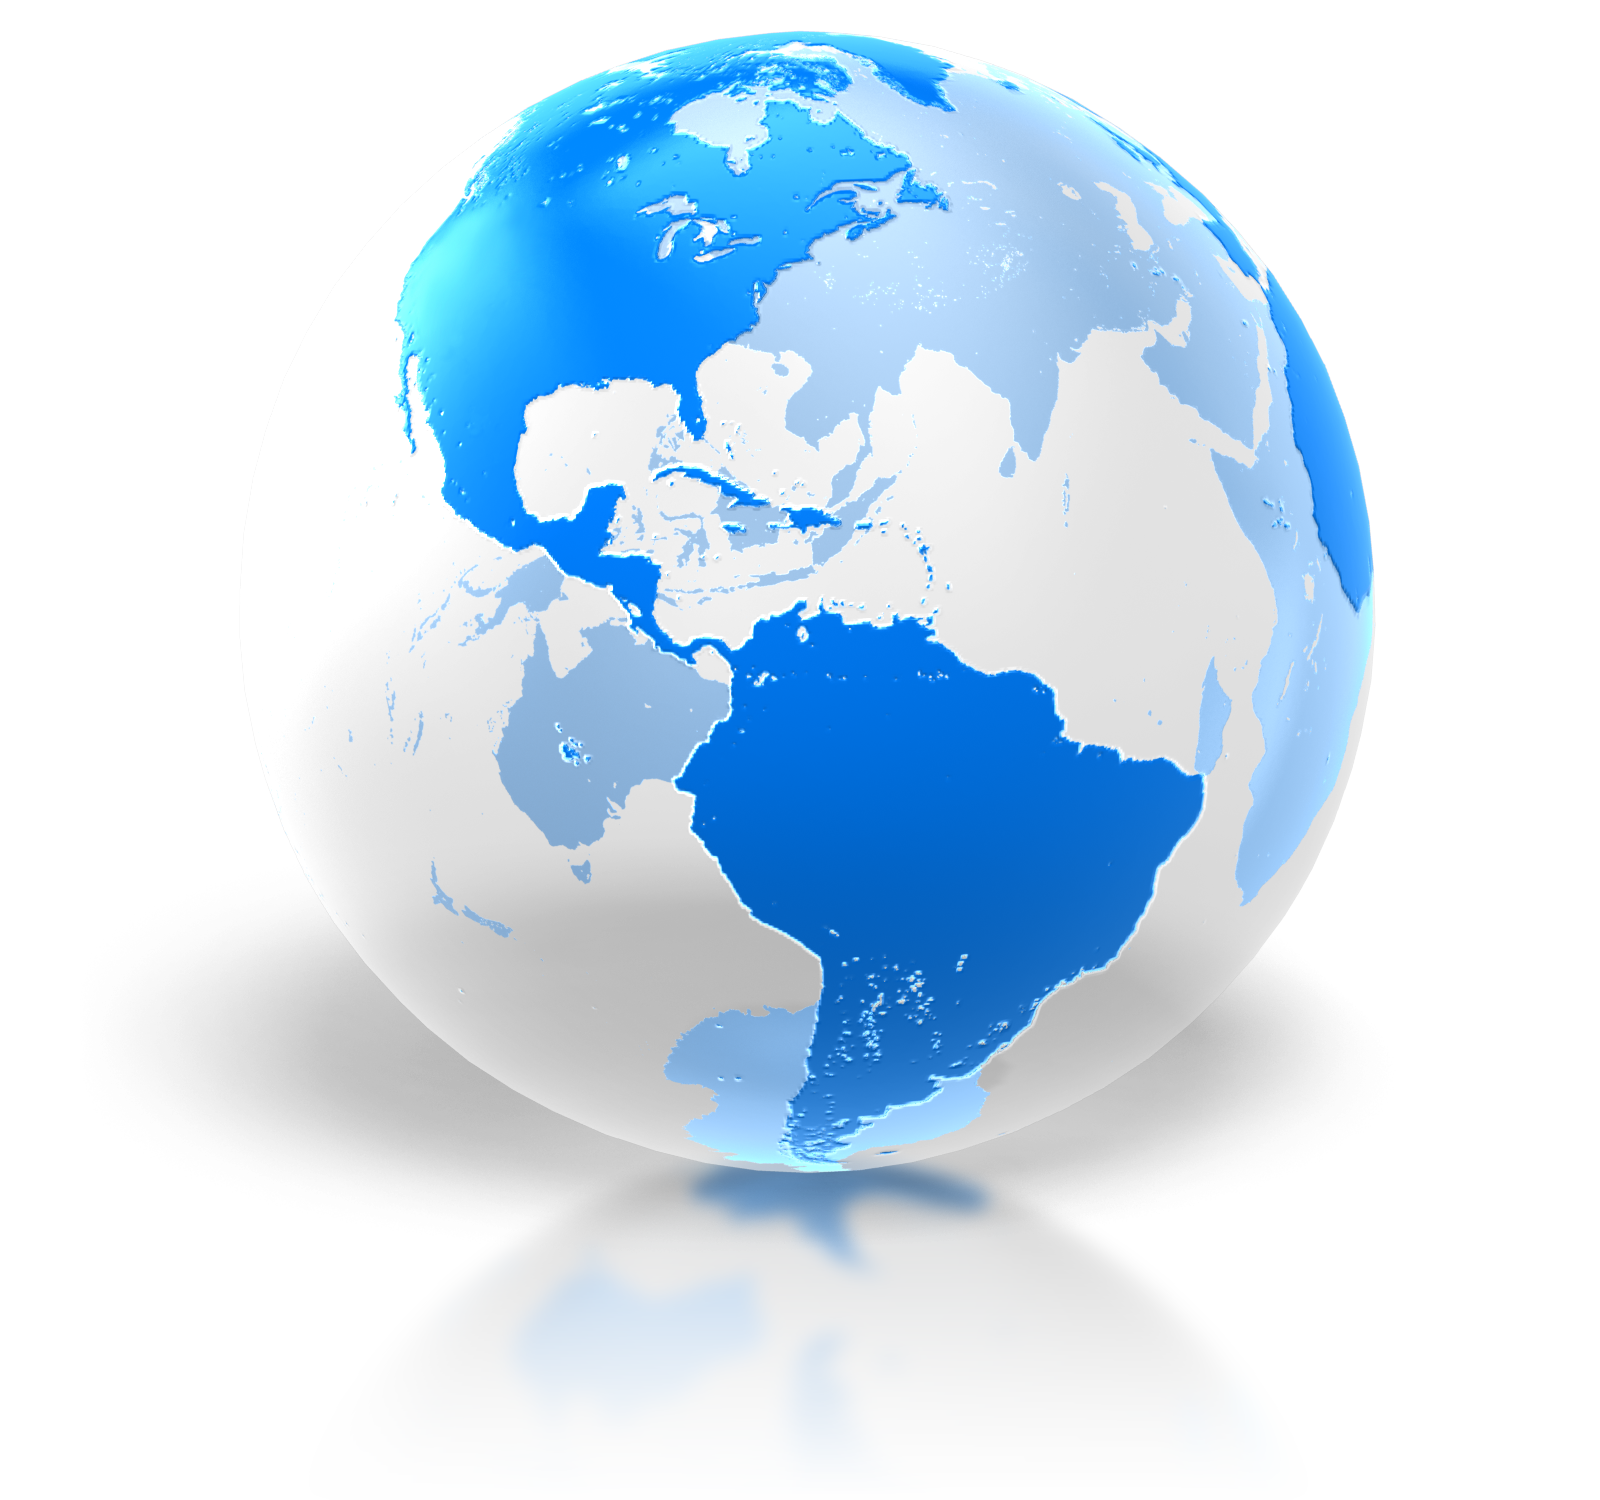 png global transparent global png images pluspng